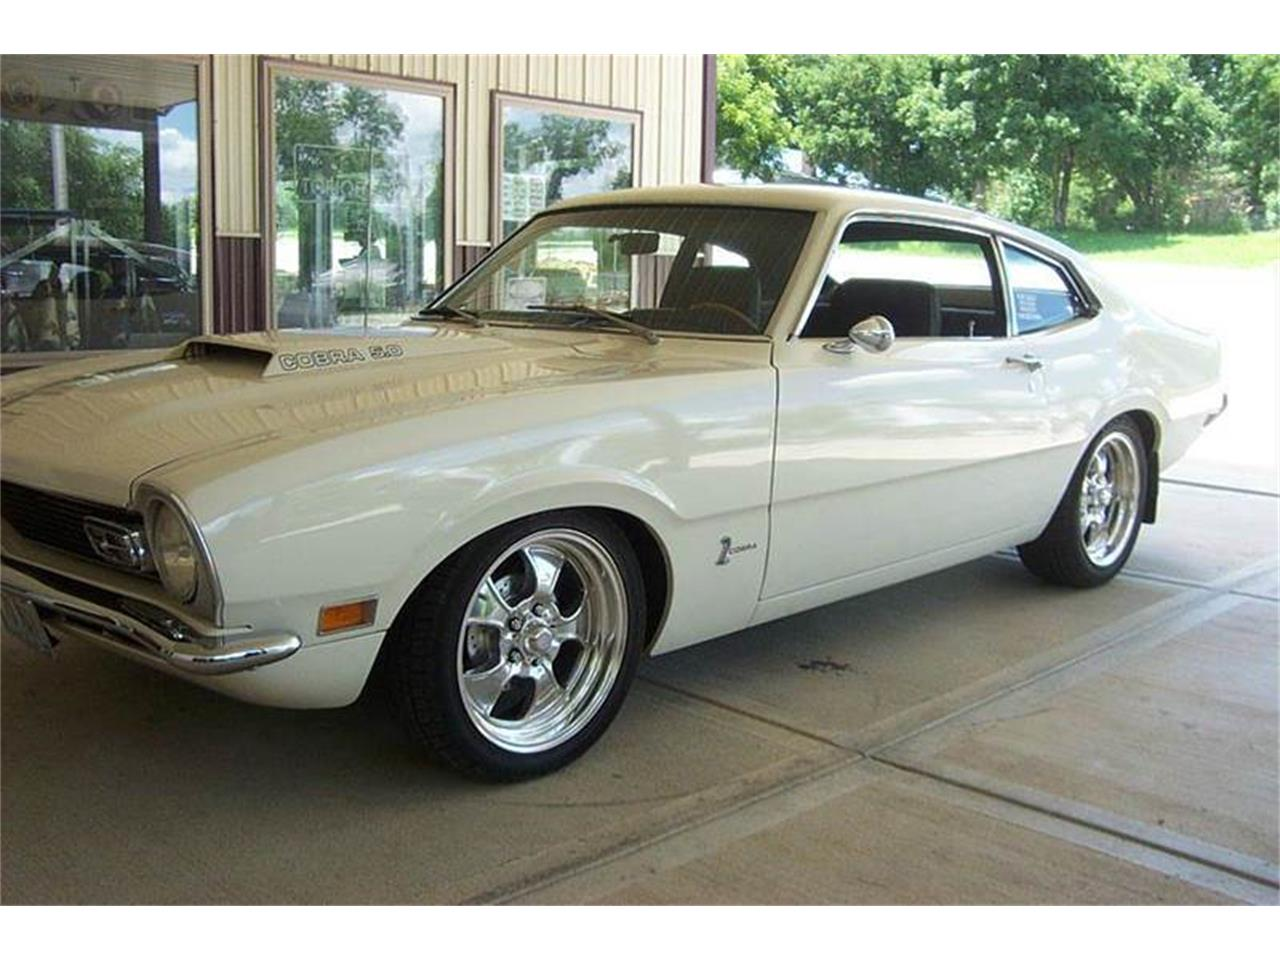 Ford Maverick For Sale >> For Sale 1970 Ford Maverick In West Line Missouri